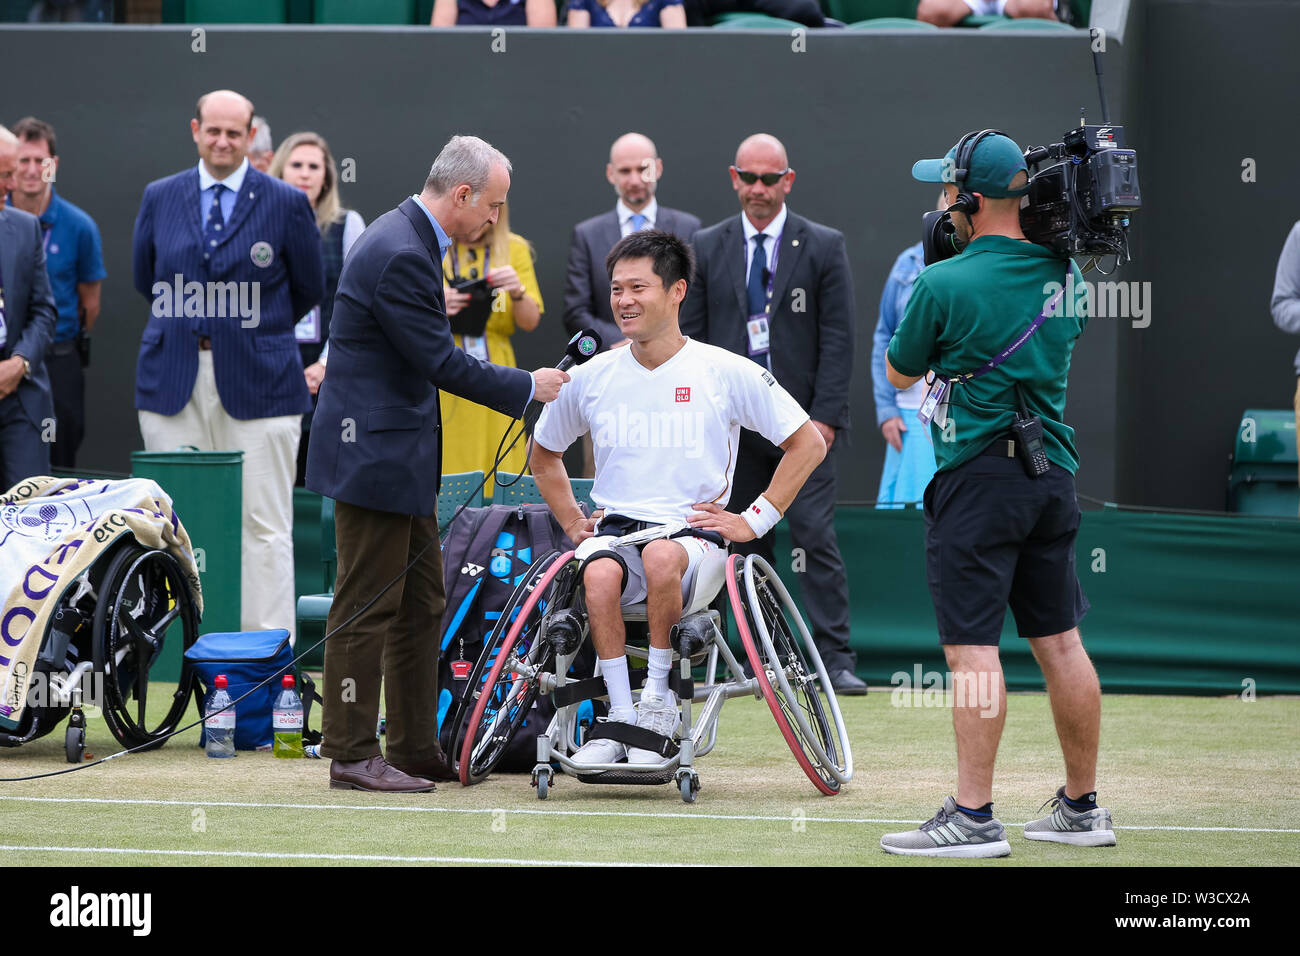 Wimbledon, London, UK. 14th July 2019. Shingo Kunieda of Japan speaks after the men's wheelchair singles final match of the Wimbledon Lawn Tennis Championships against Gustavo Fernandez of Argentina at the All England Lawn Tennis and Croquet Club in London, England on July 14, 2019. Credit: AFLO/Alamy Live News - Stock Image